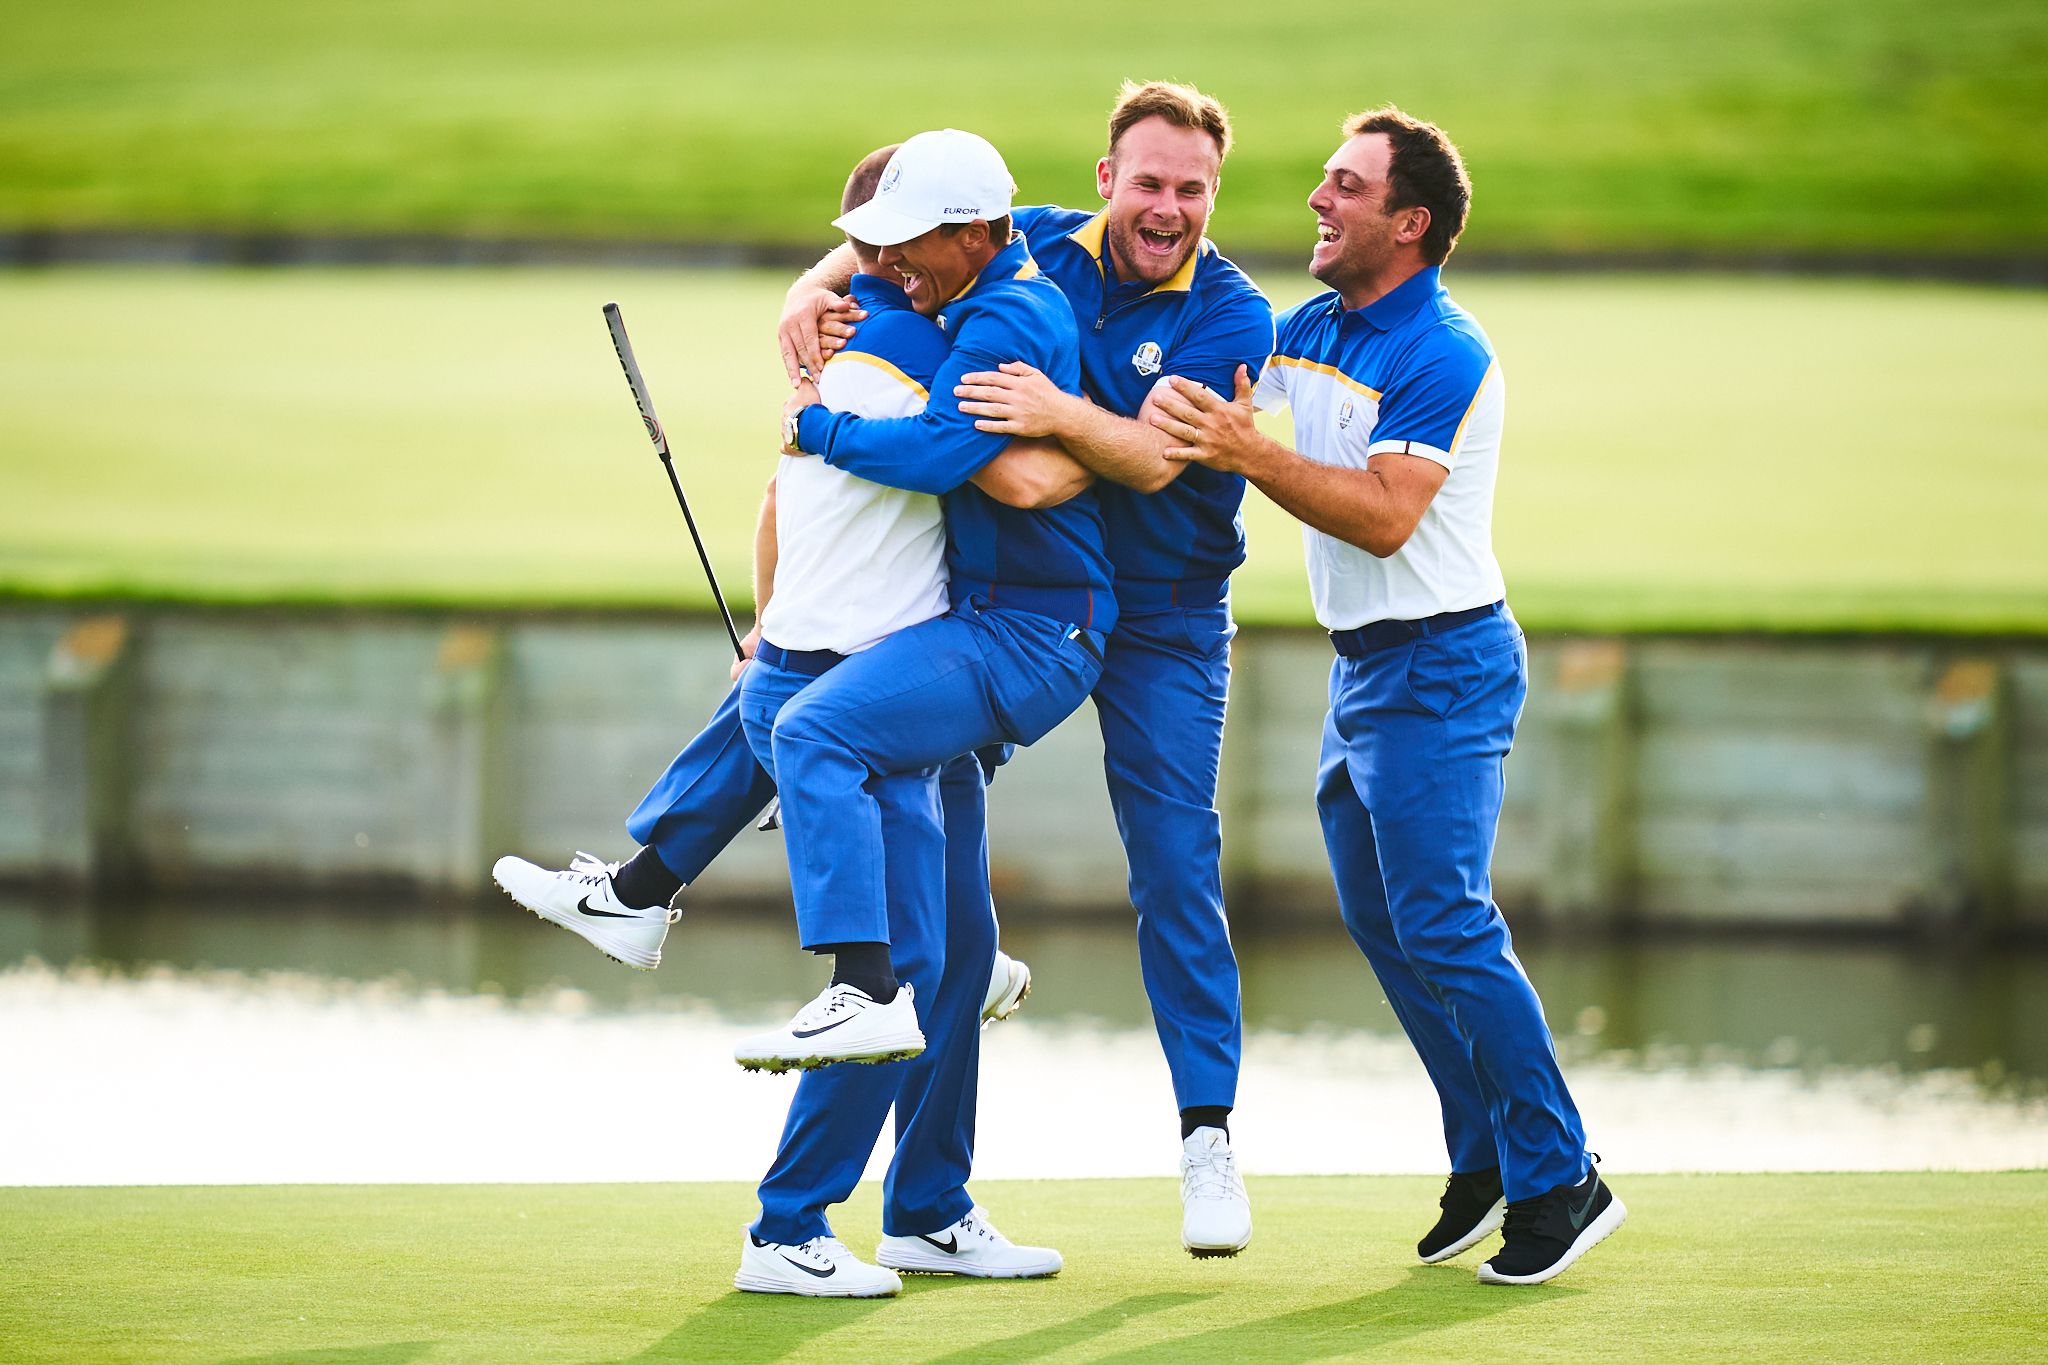 Alex Noren, Thorbjorn Olesen, Tyrell Hatton, and Francisco Molinari celebrate Europe's victory  Sony A9, Sony 400mm f2.8 GM-OSS